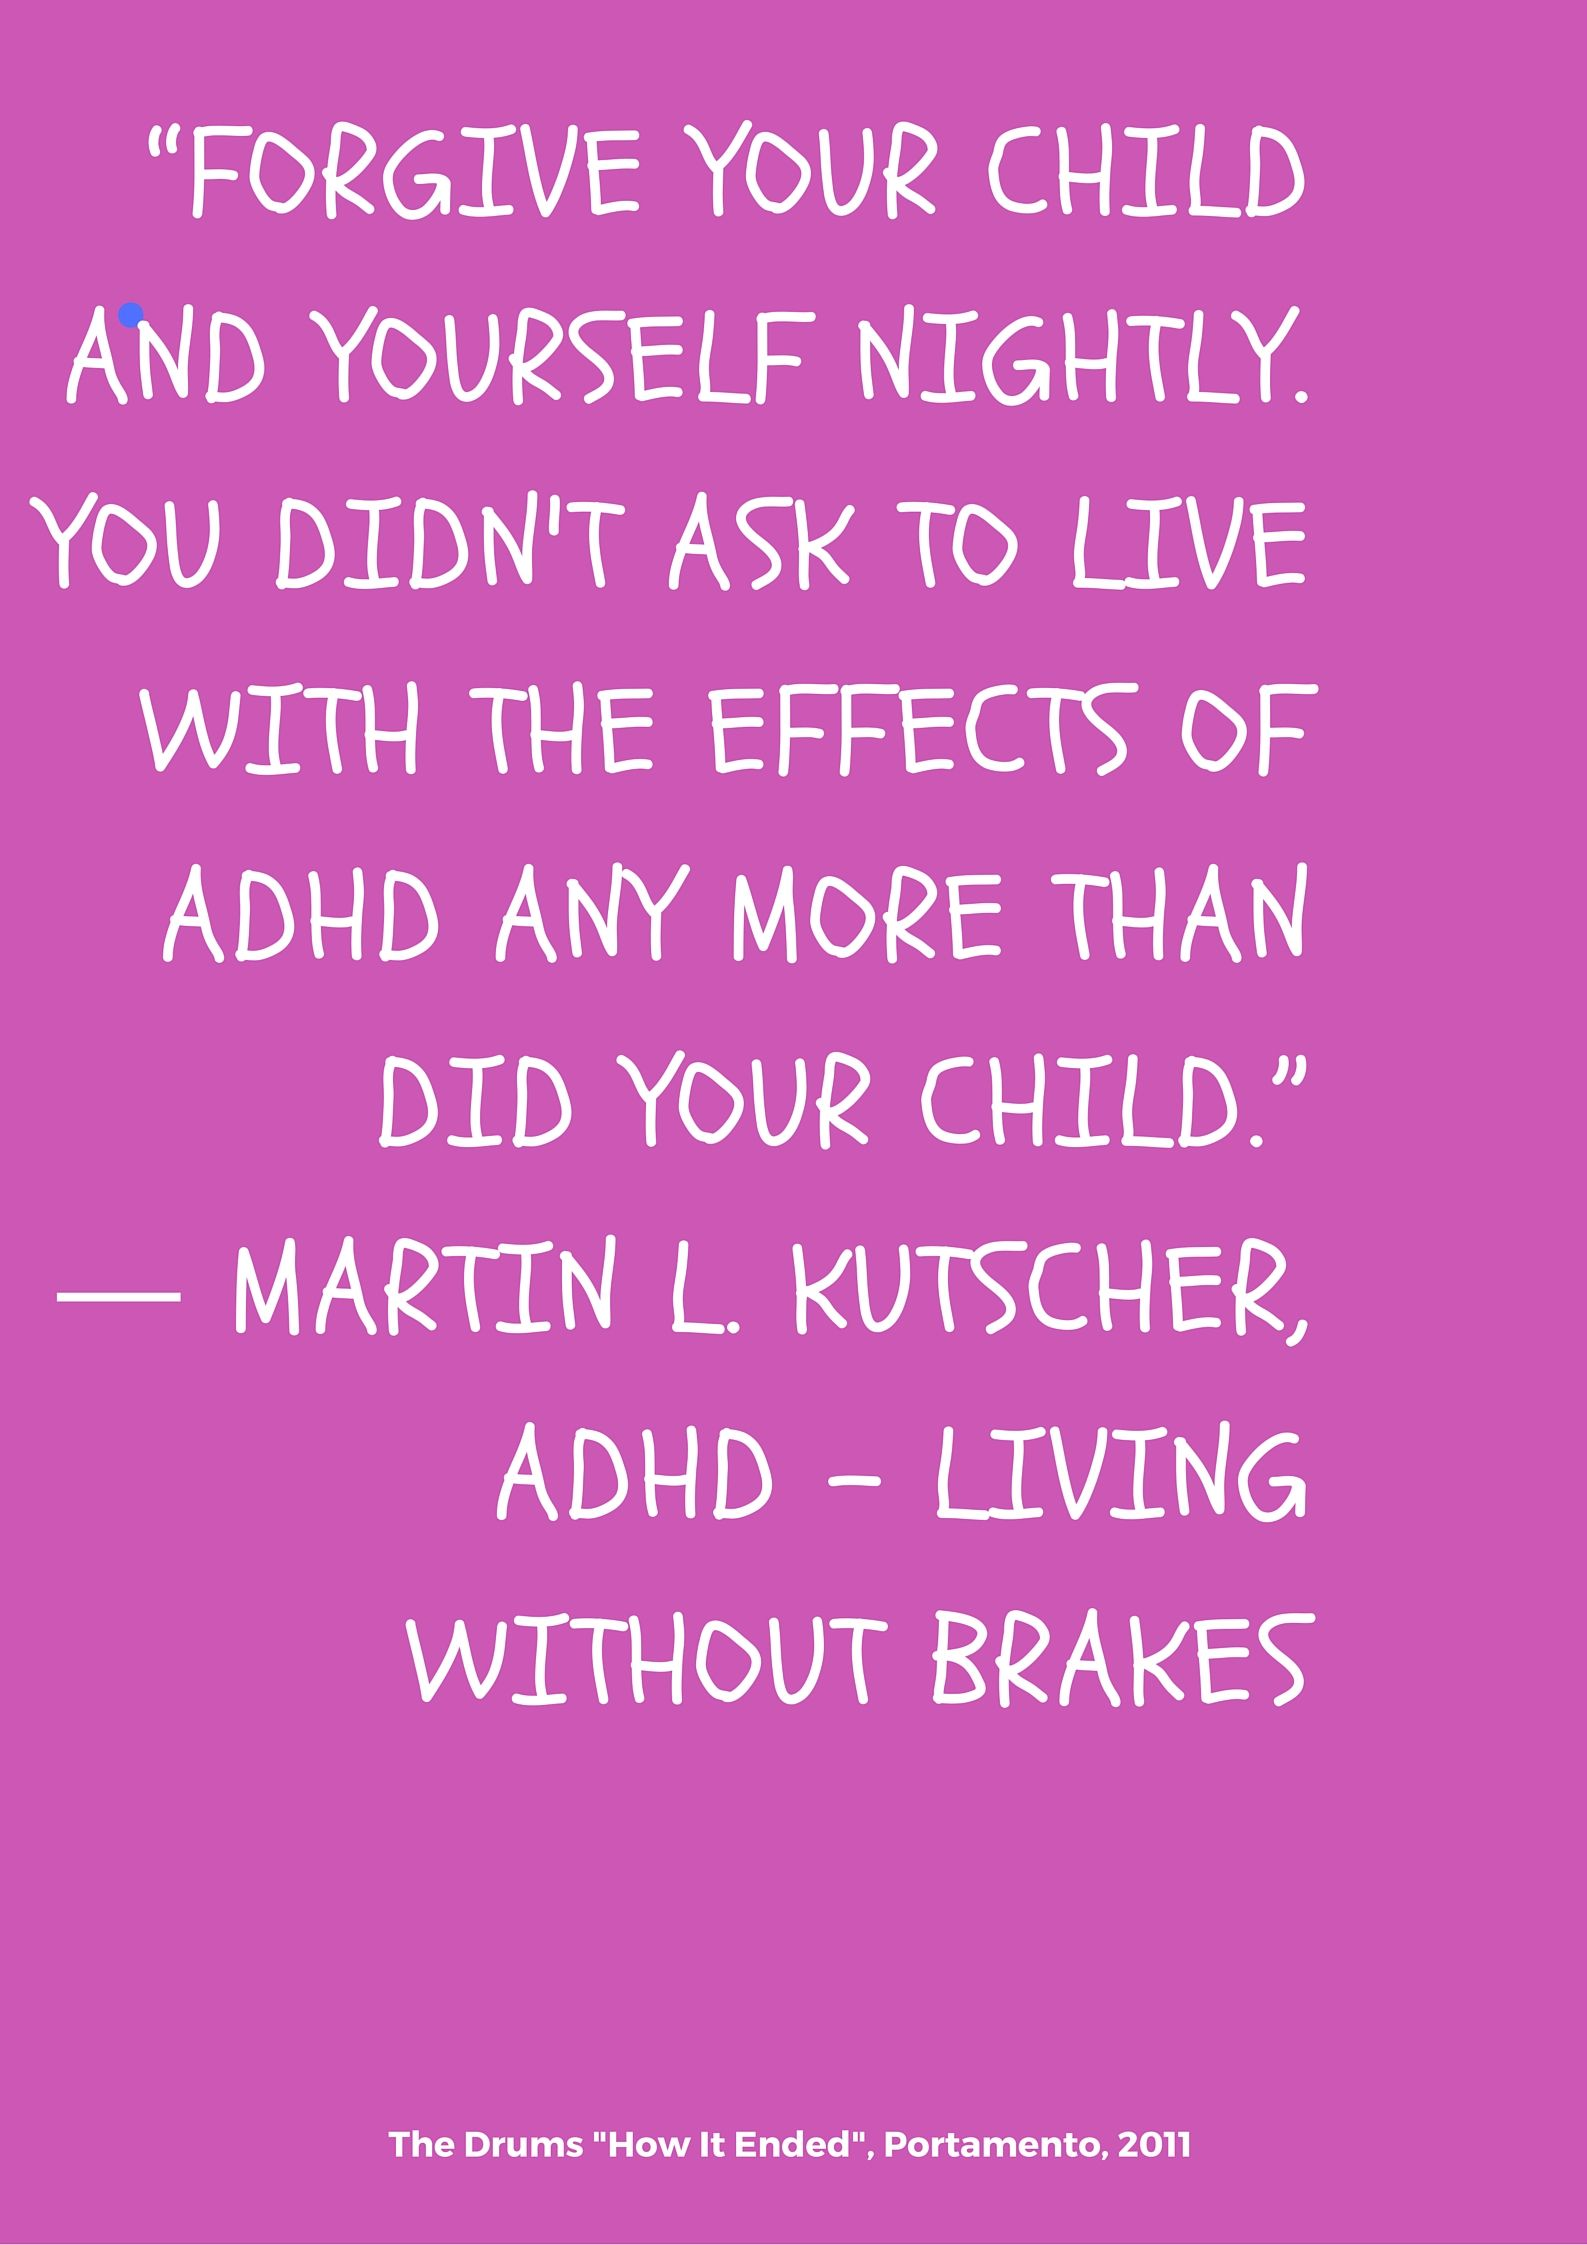 Forgiving is key but also getting a proper diagnosis is essential  http://problemkidsblog.com/2014/05/20/diagnosing-children-with-adhd/